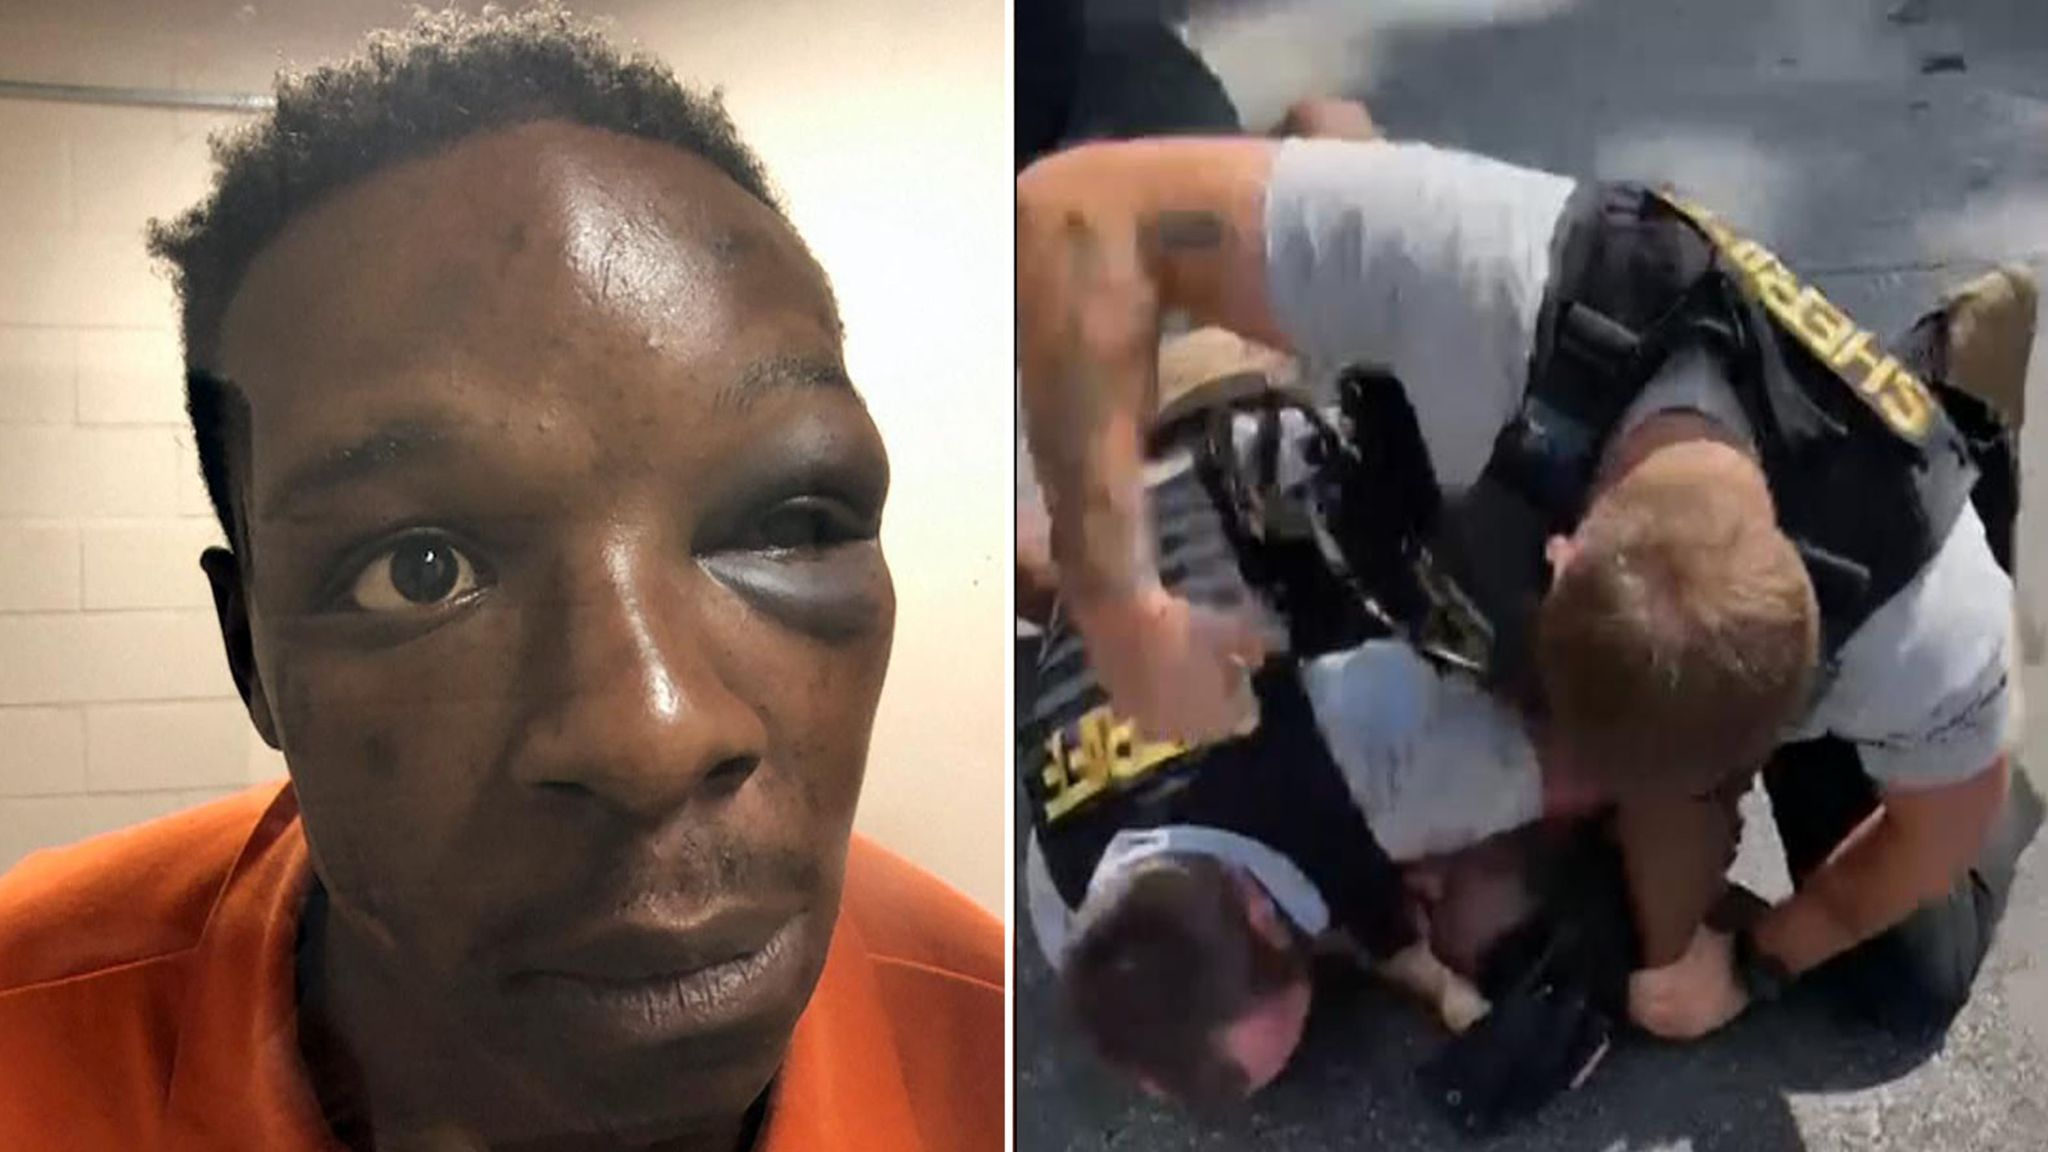 Georgia Policeman Fired For Beating Man Caught on Video